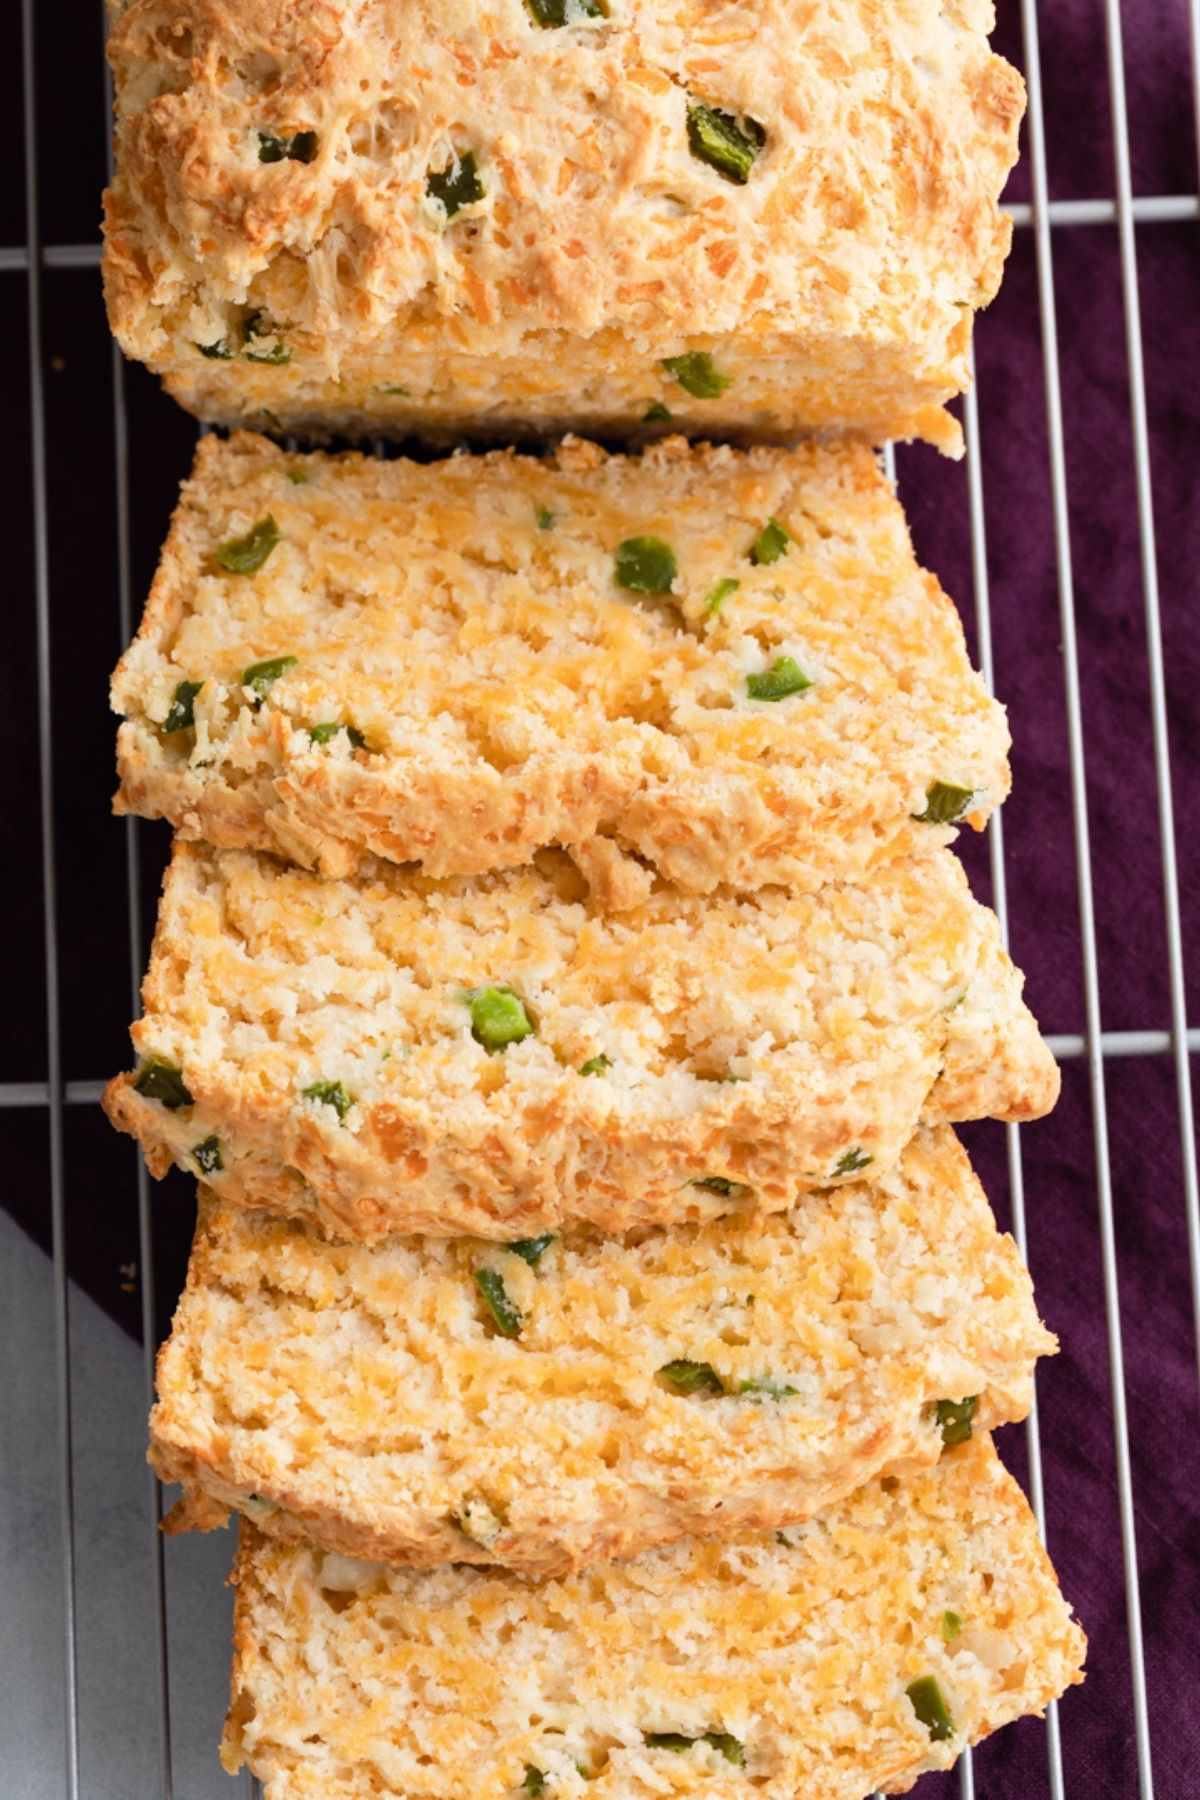 Close up view of slices of cheddar jalapeno buttermilk bread